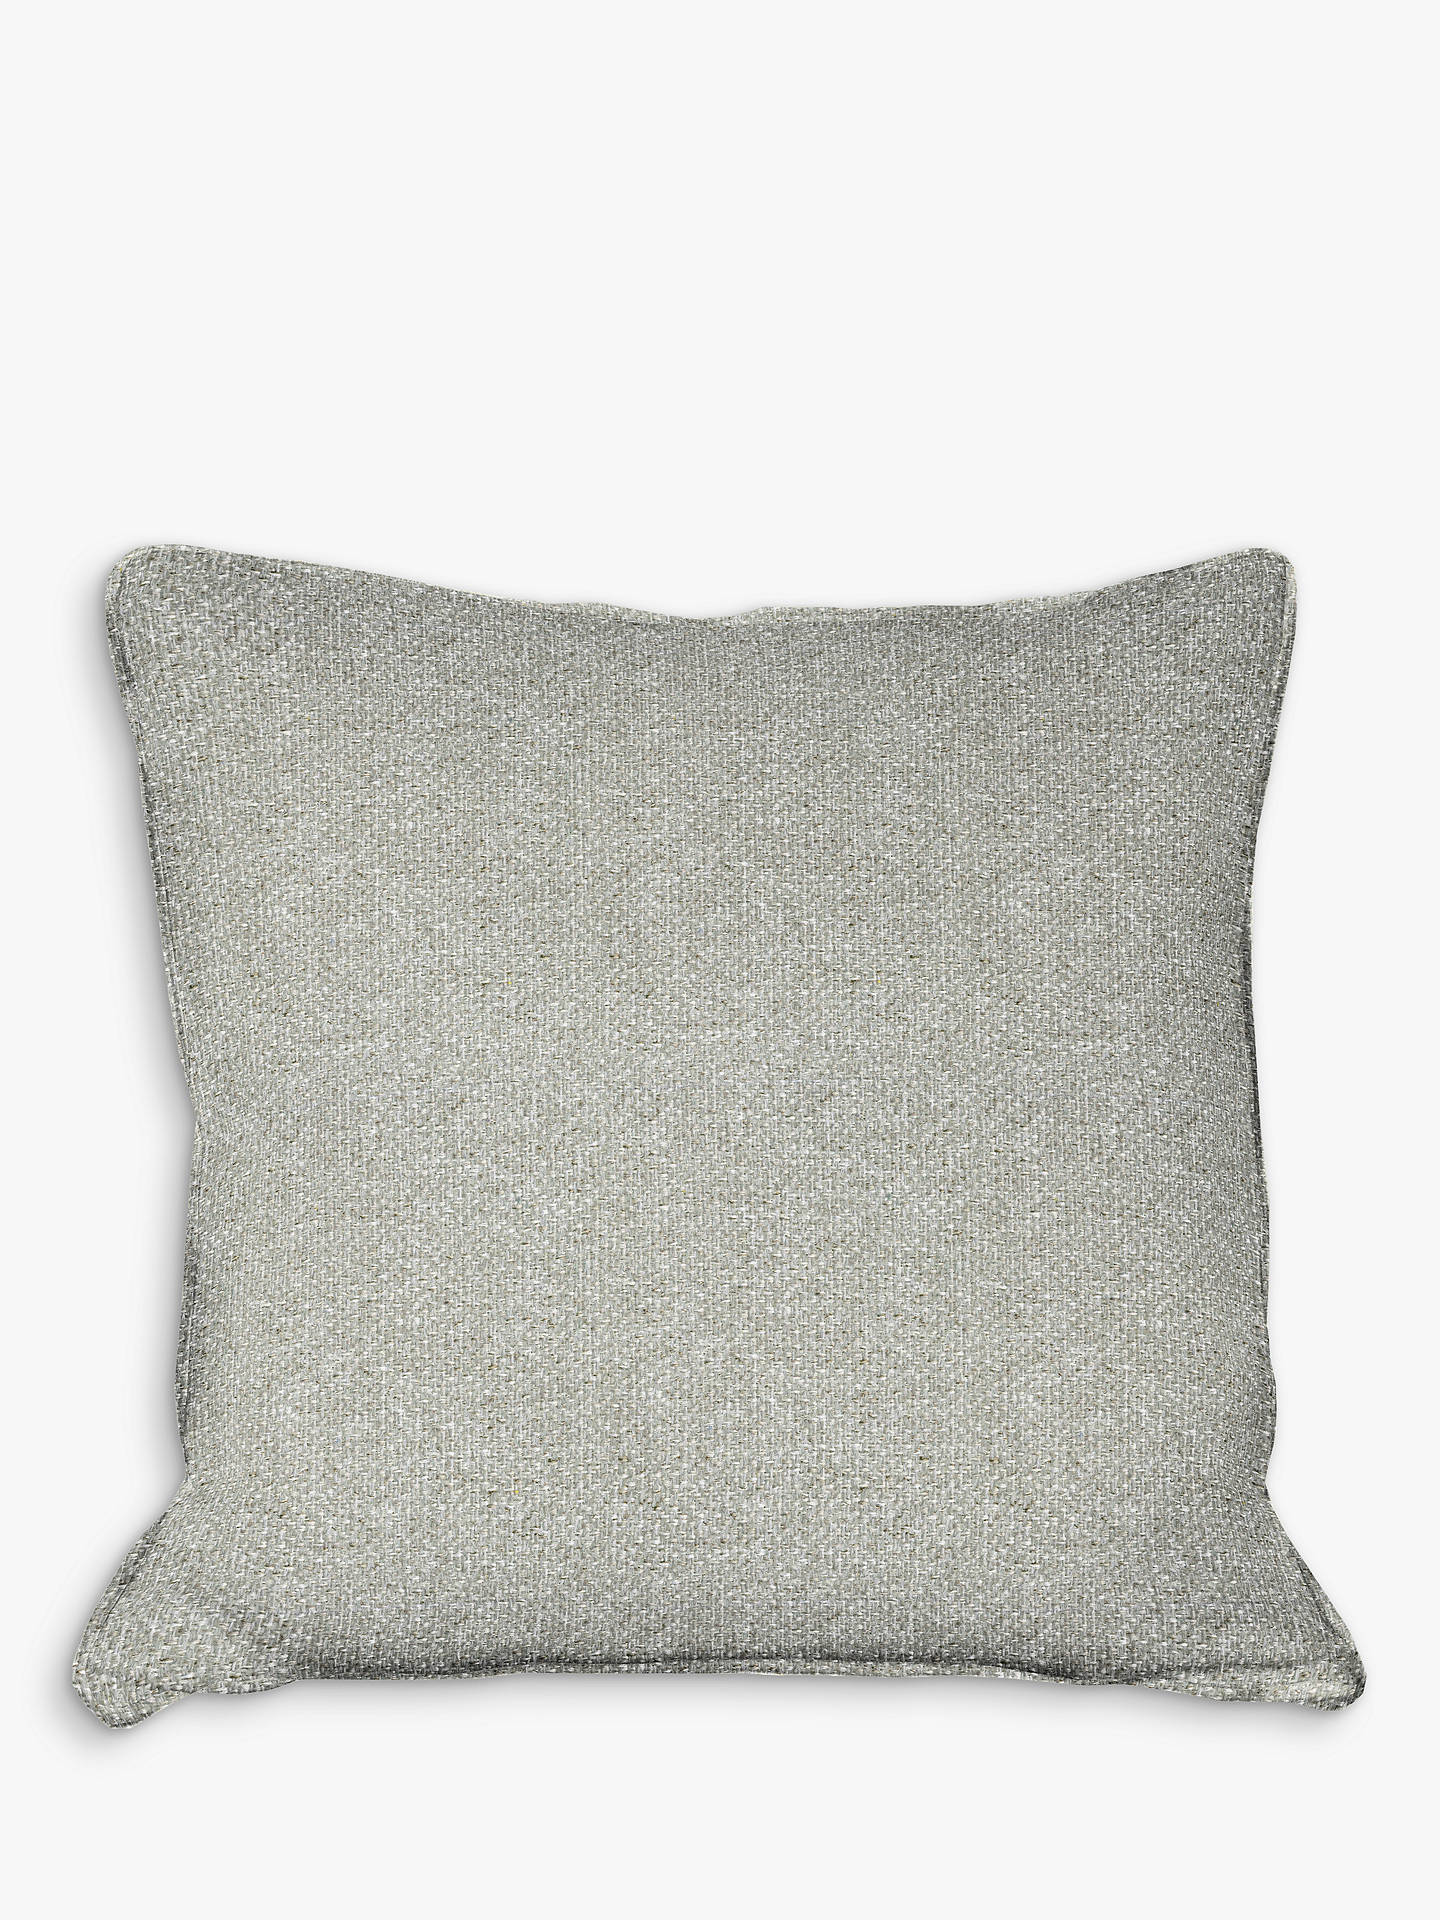 Buy G Plan Vintage Scatter Cushion, Sherbert Cloud Online at johnlewis.com